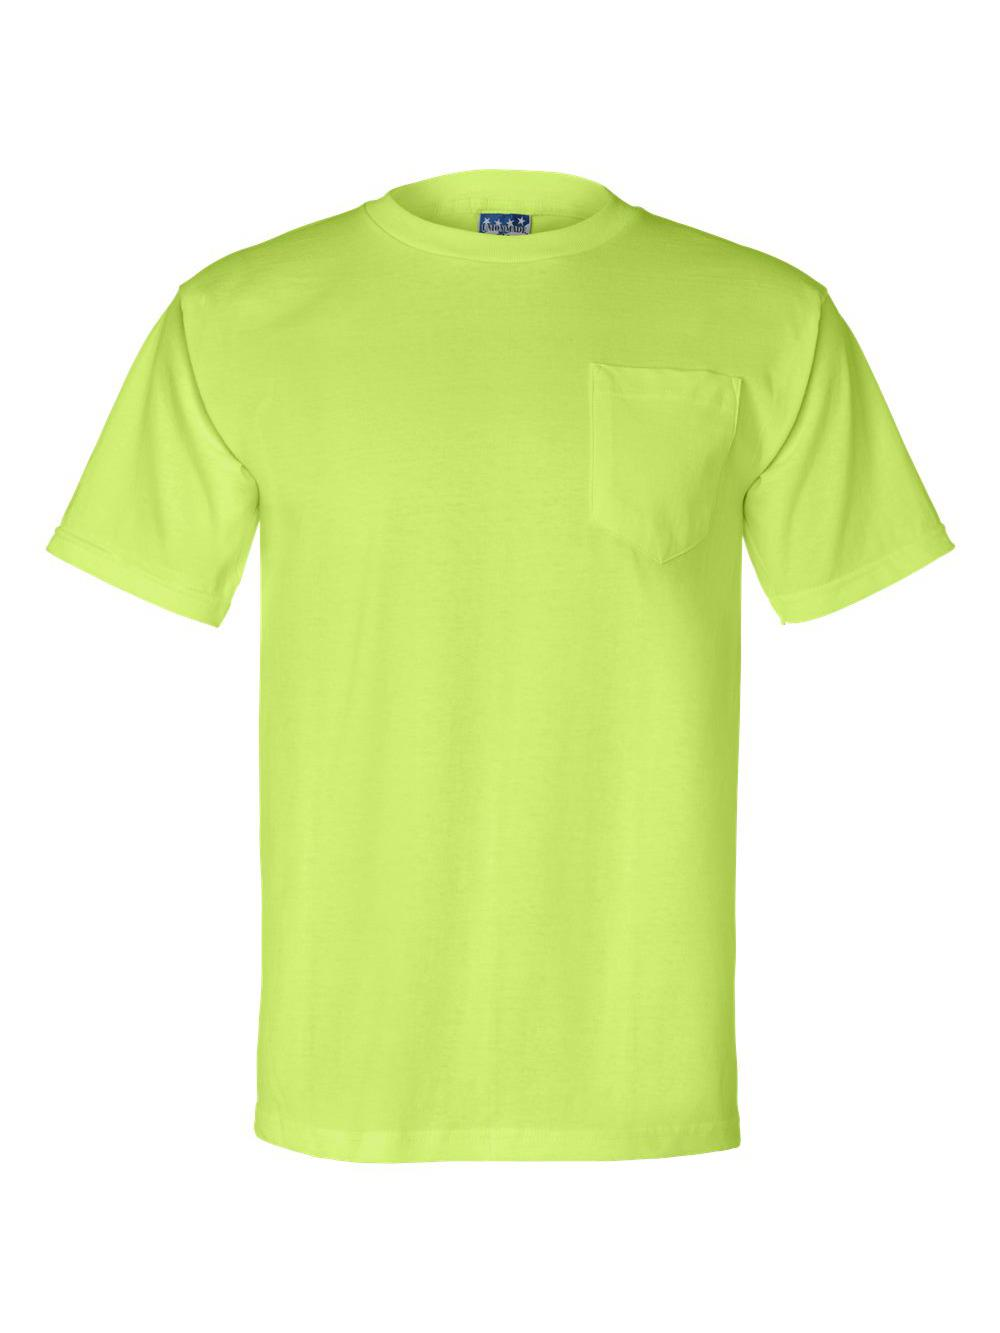 Bayside-Union-Made-Short-Sleeve-T-Shirt-with-a-Pocket-3015 thumbnail 15